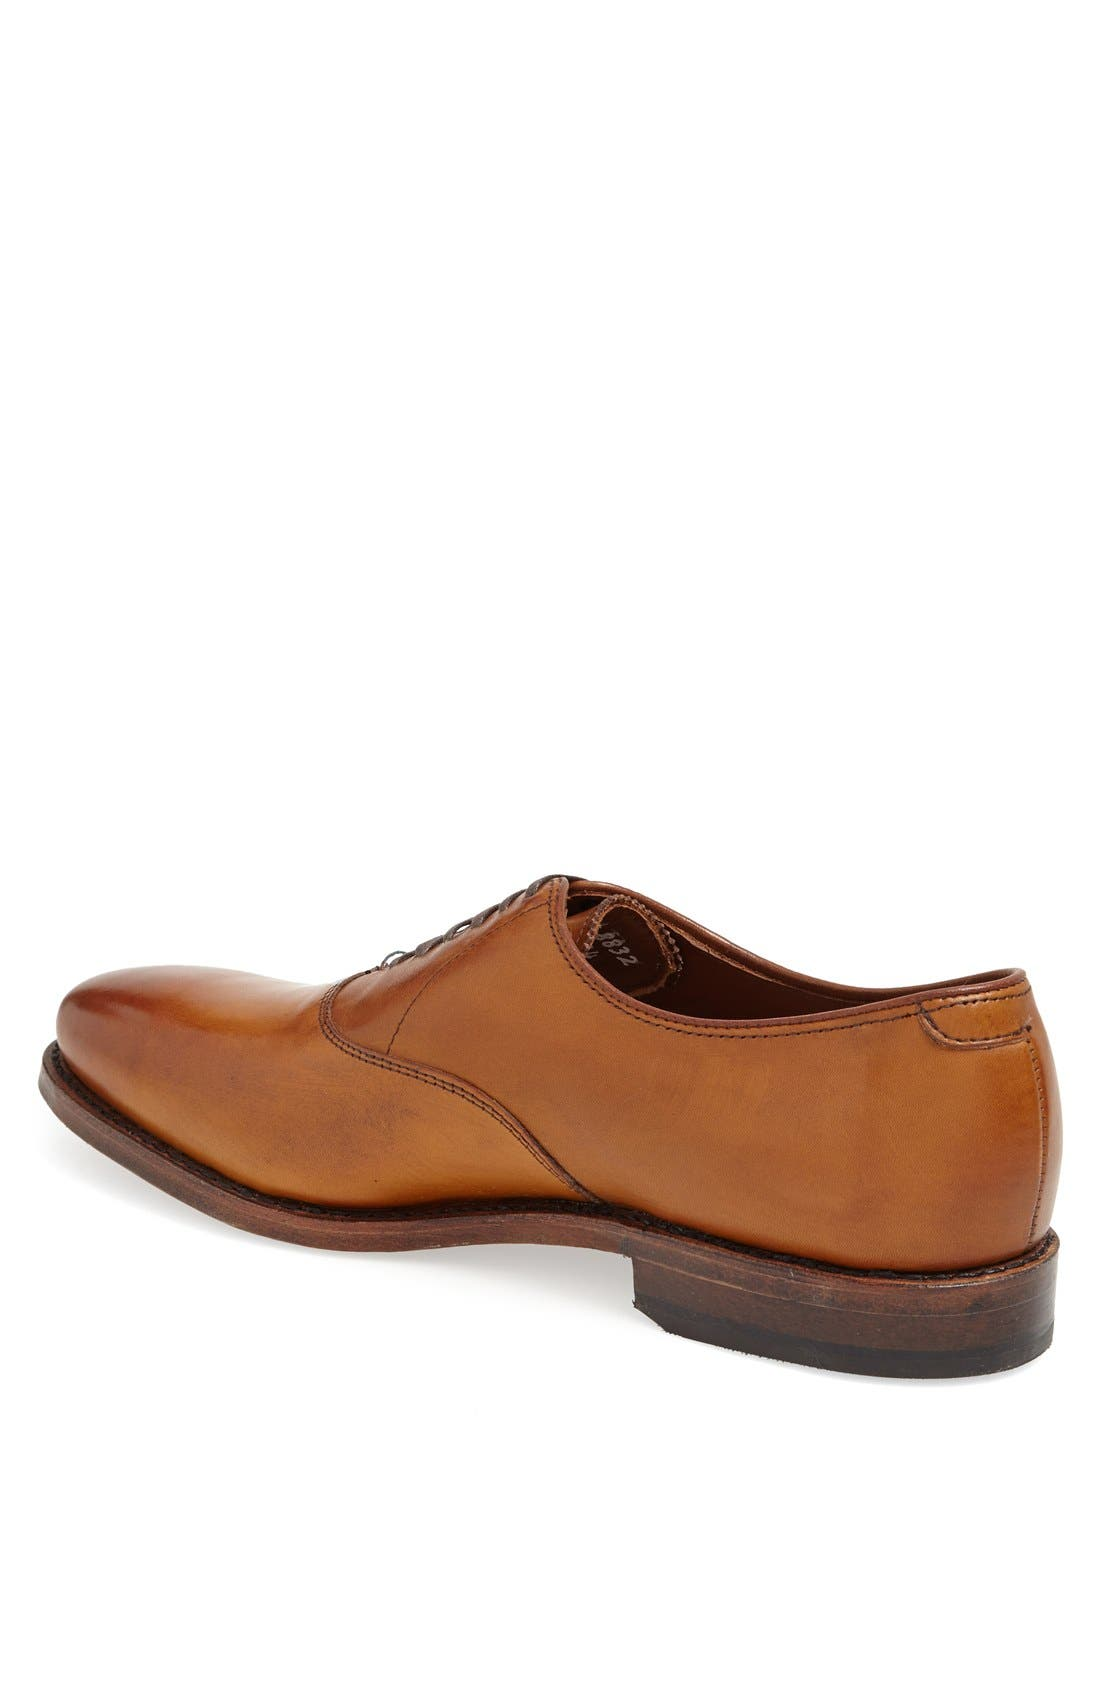 Carlyle Plain Toe Oxford,                             Alternate thumbnail 2, color,                             WALNUT LEATHER